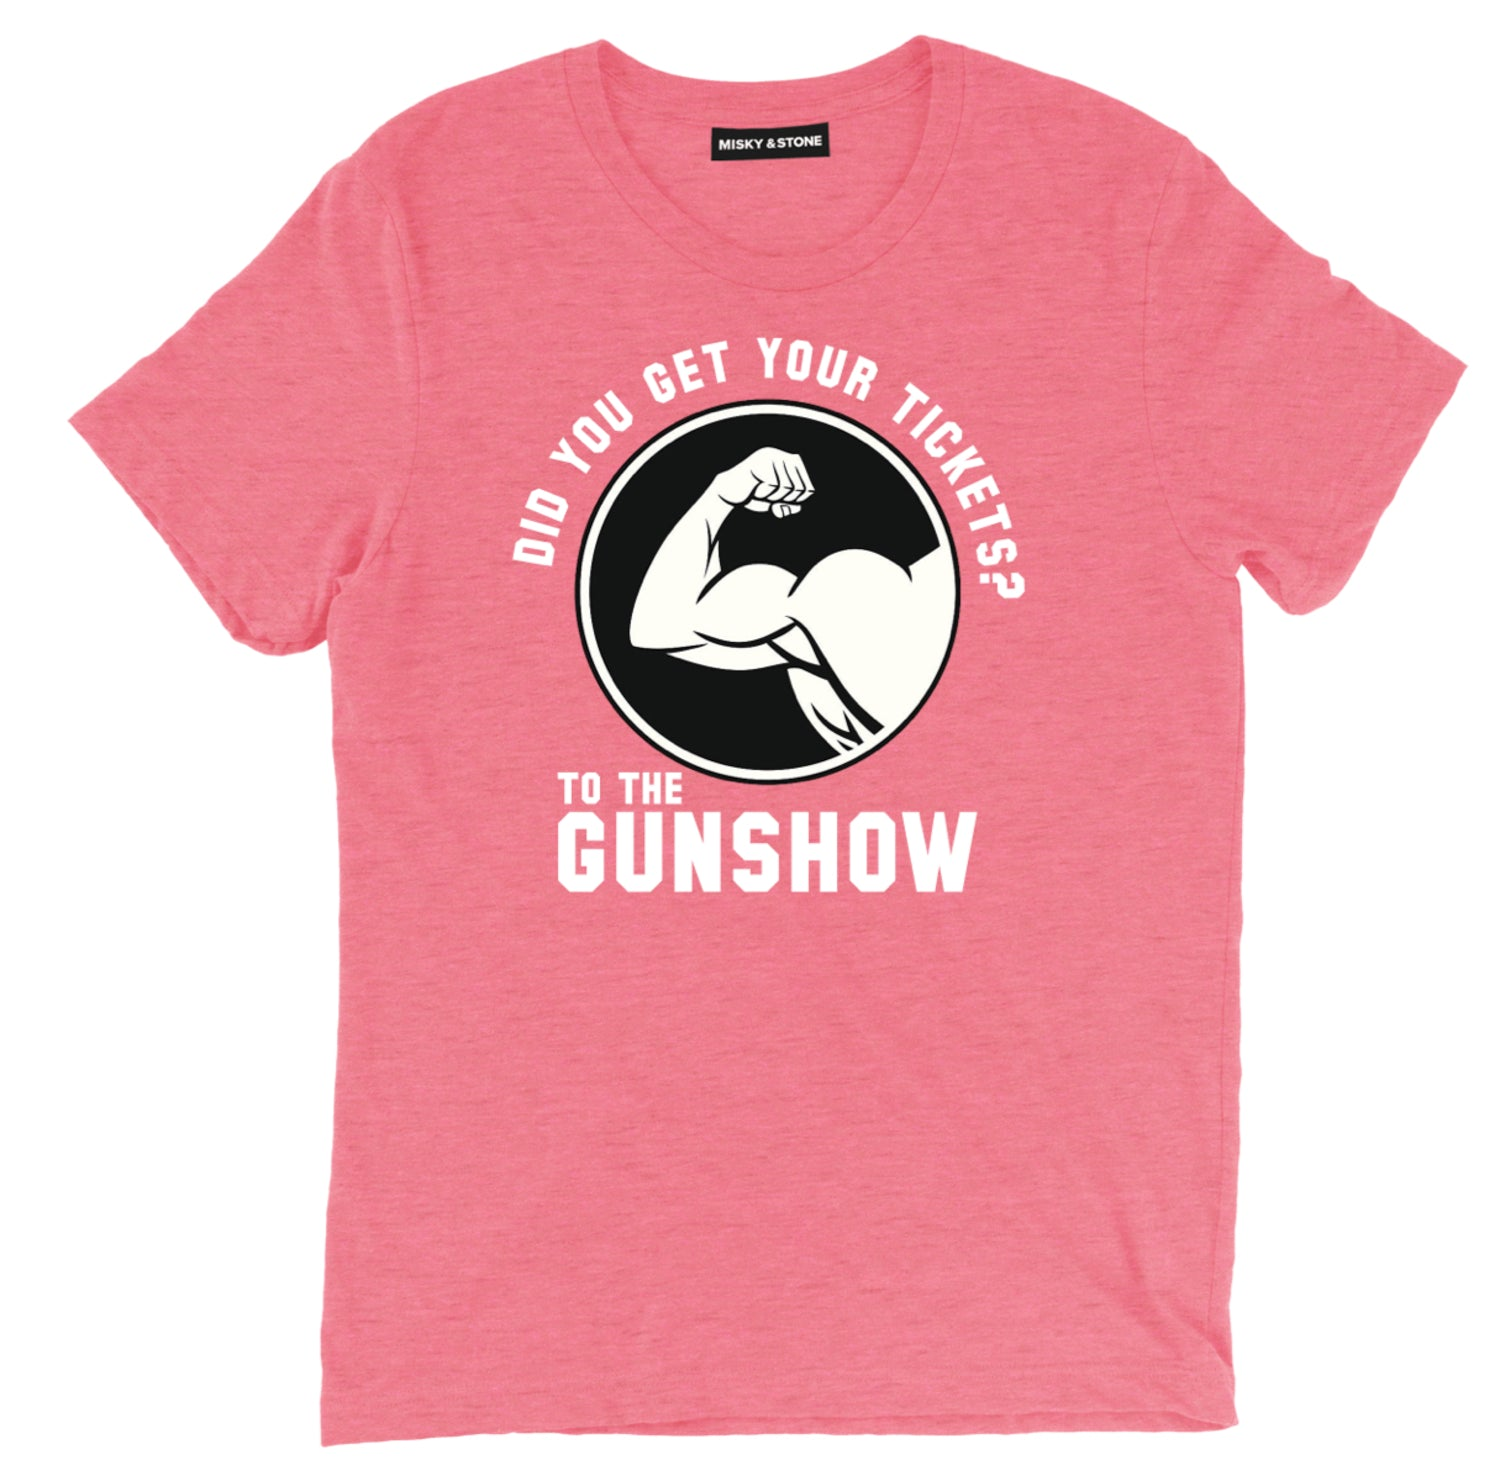 Get Your Tickets To The Gun Show Tee